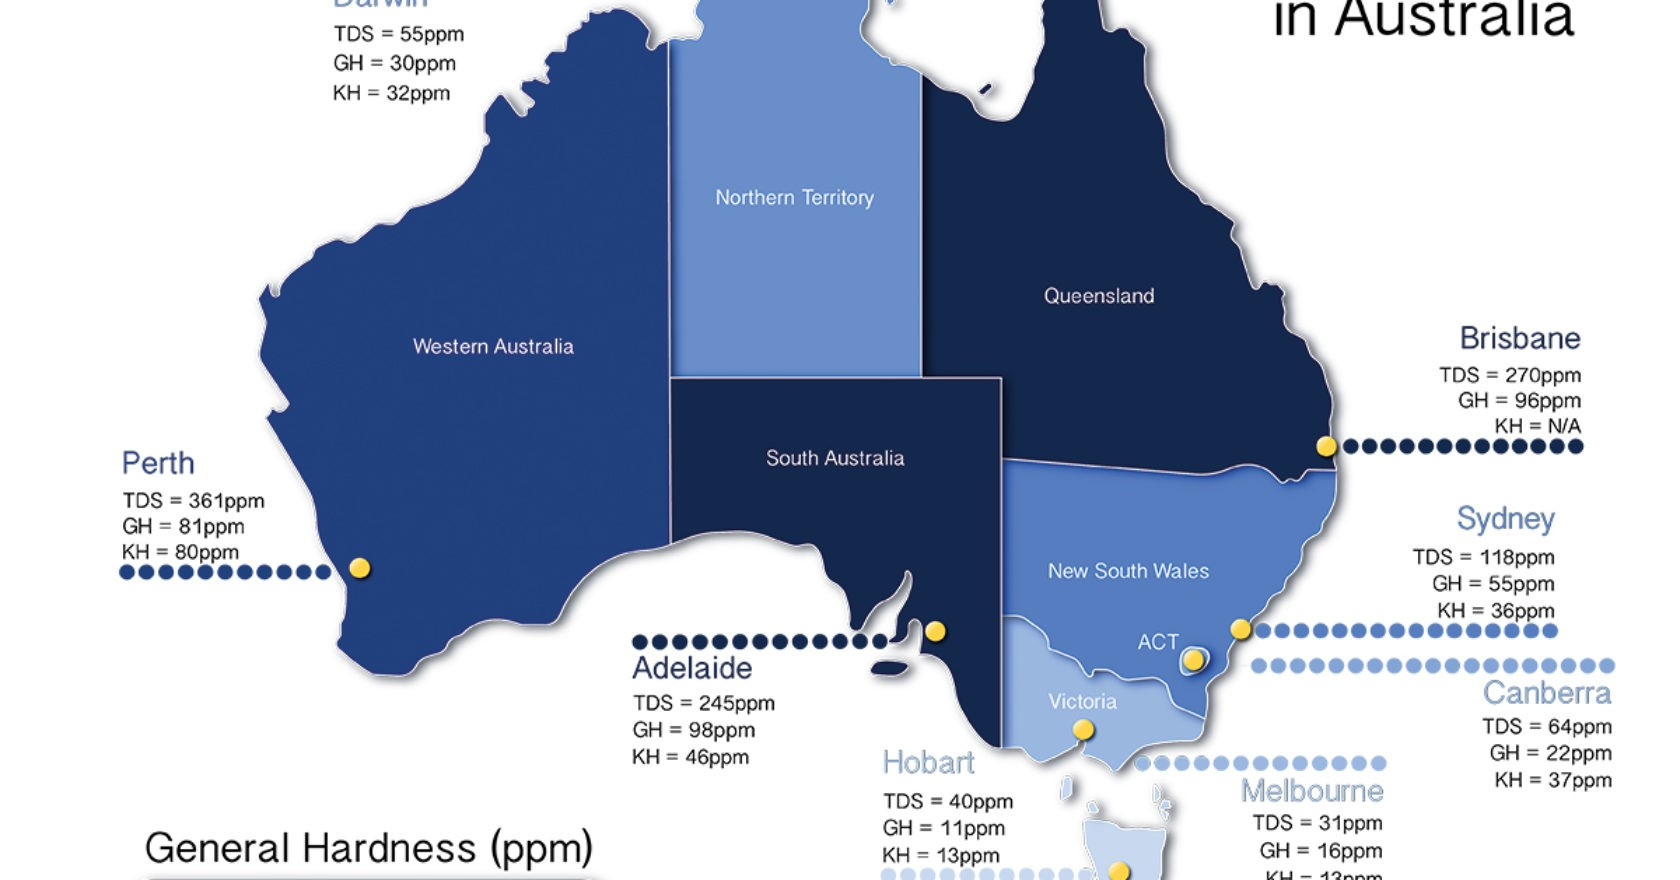 Water hardness across Australia